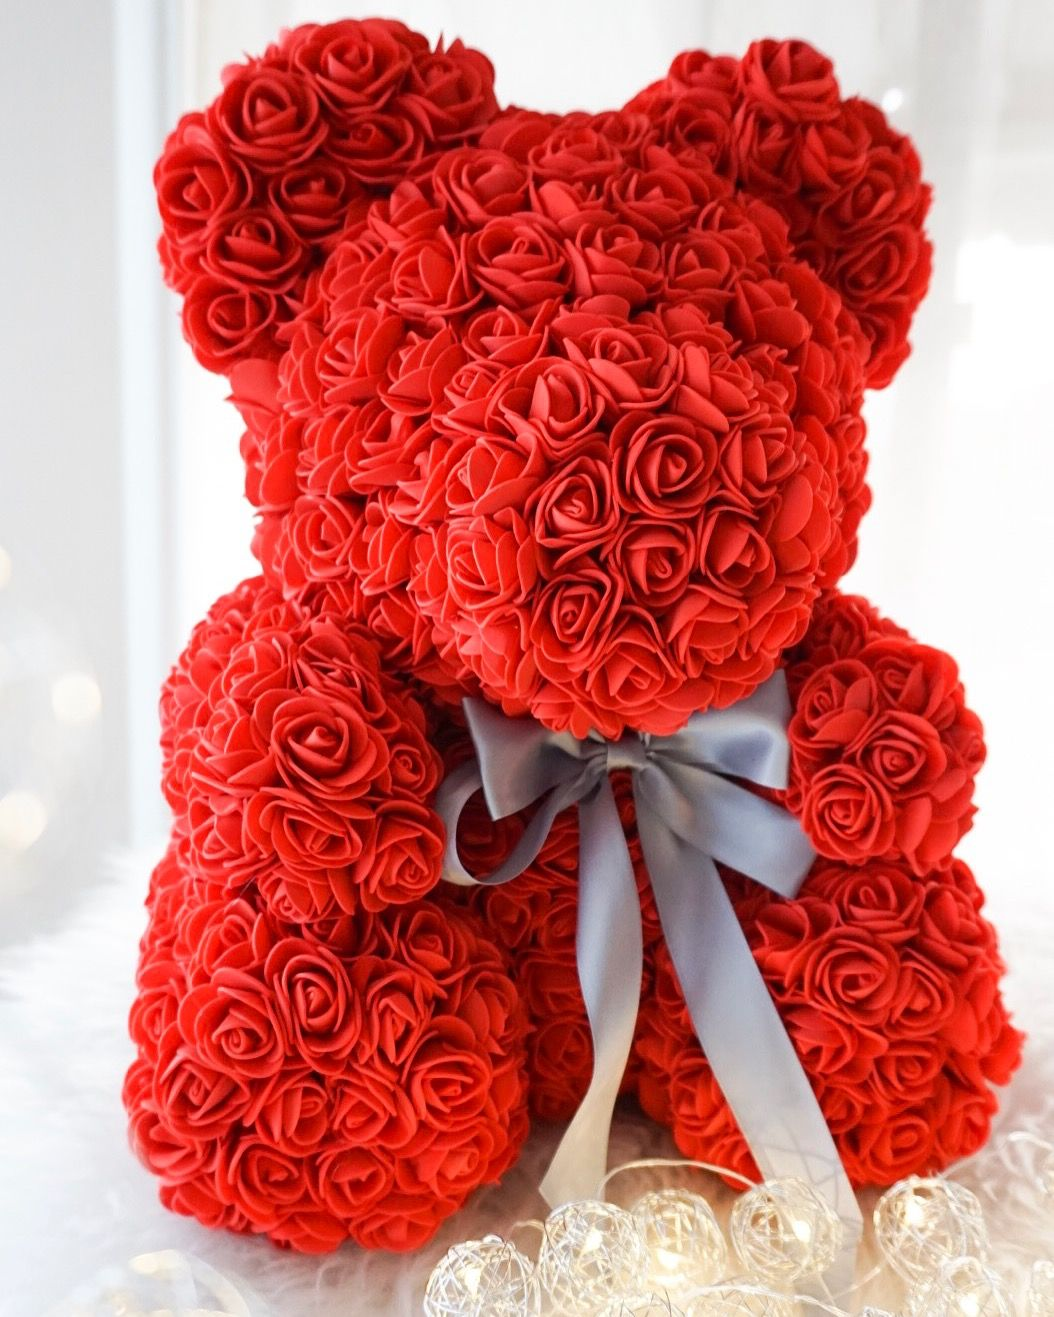 Alurdina Rose Bear, Faux Rose Teddy Bear, Artificial